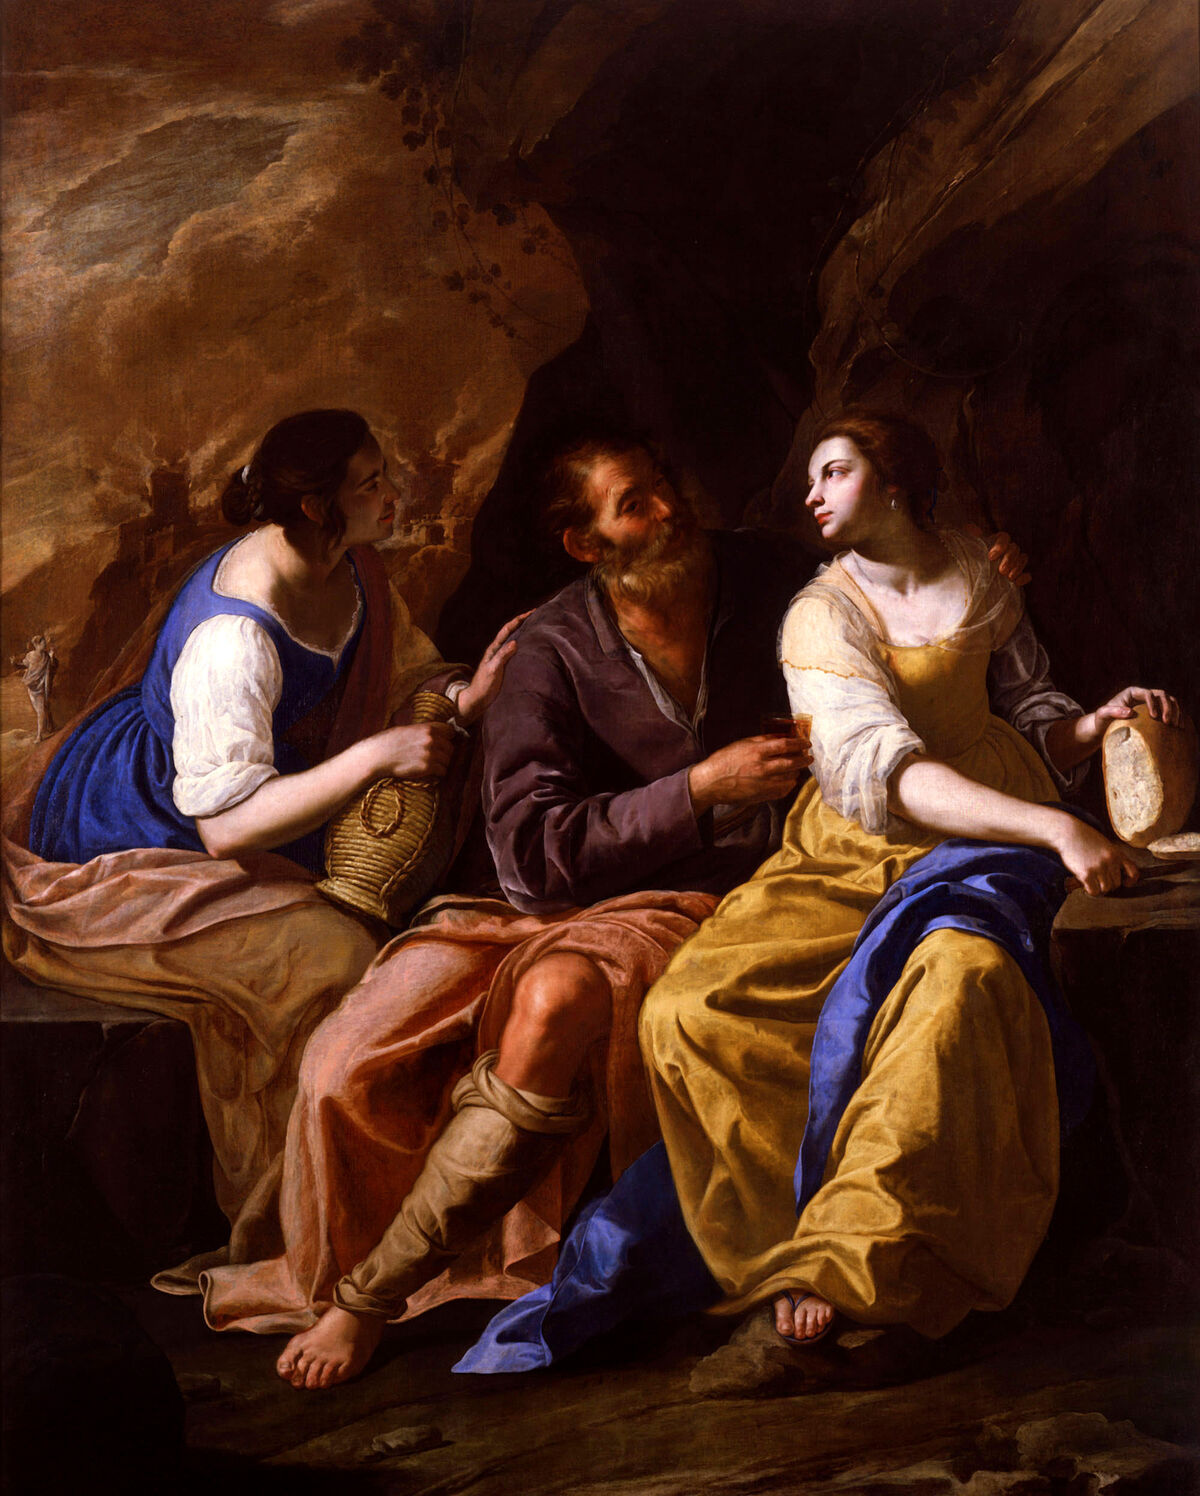 Artemisia Gentileschi, Lot and his Daughters, between 1635-1638. Photo via Wikimedia Commons.